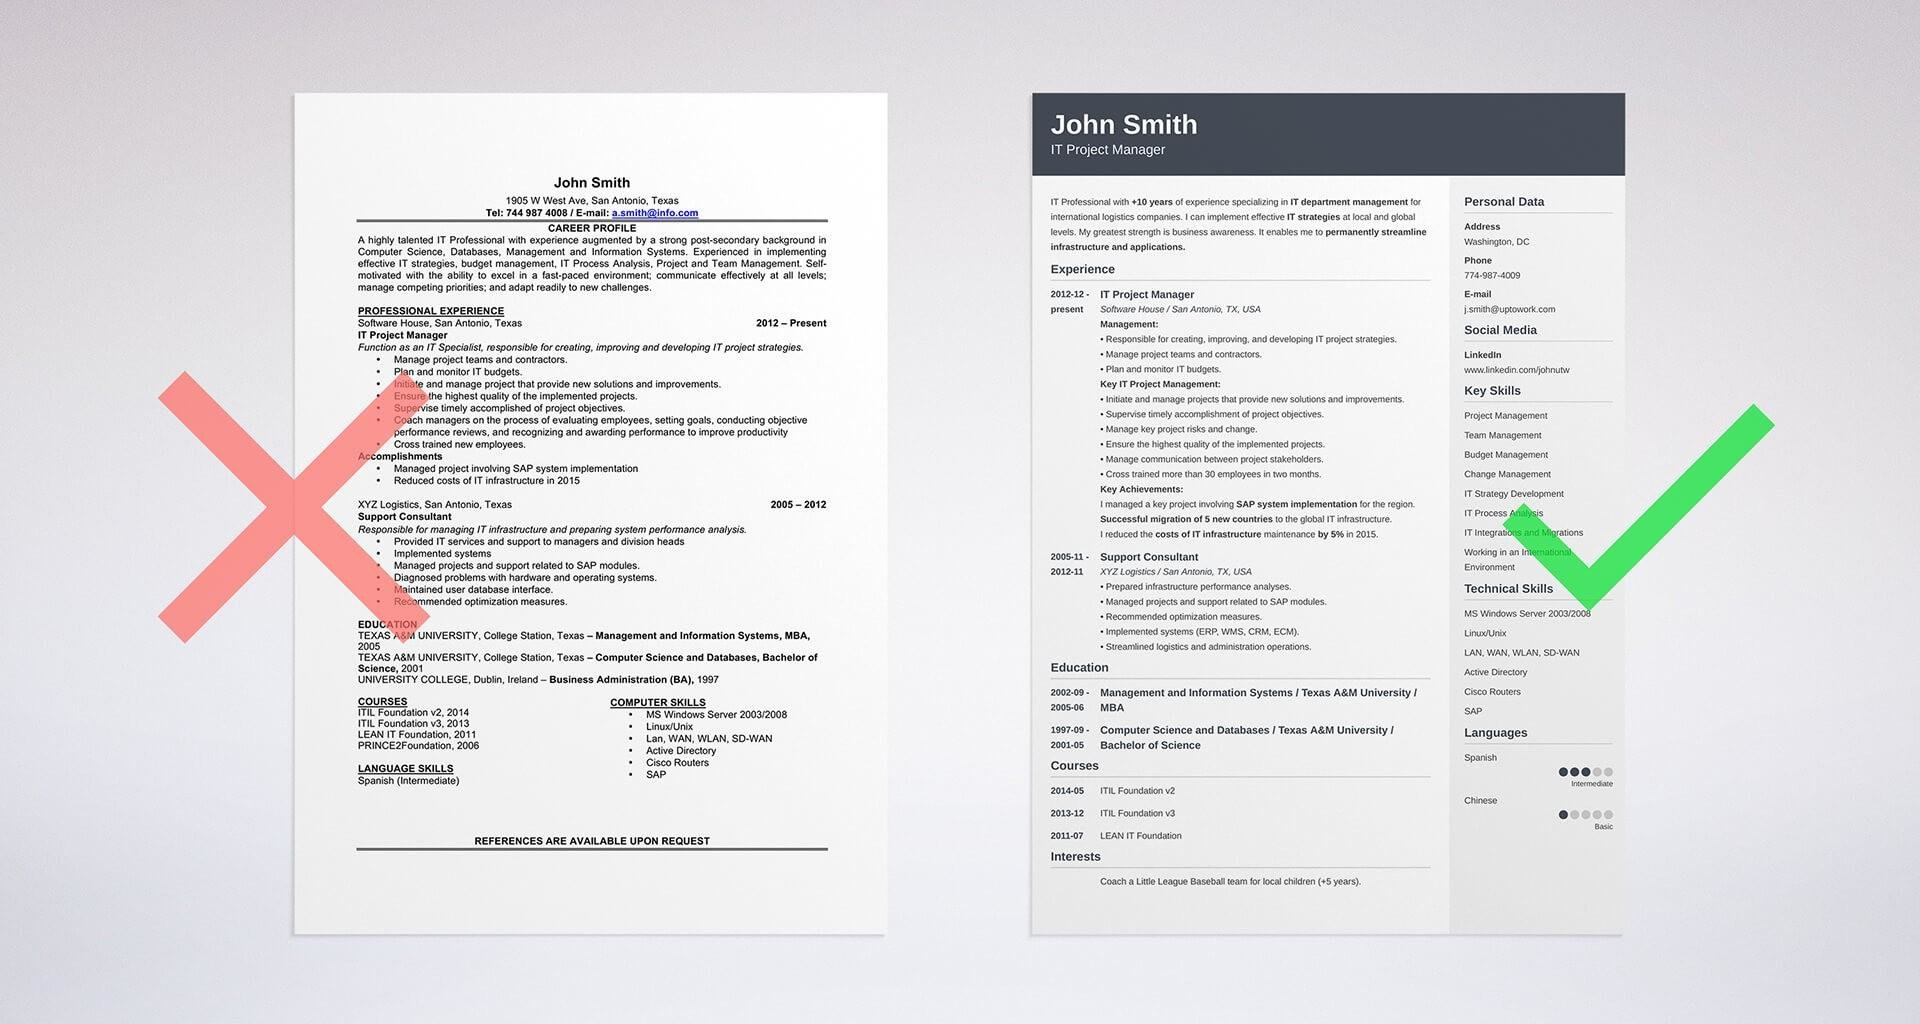 of hobbies and interests for resume cv examples should you put personal on to ccna Resume Should You Put Personal Interests On Resume